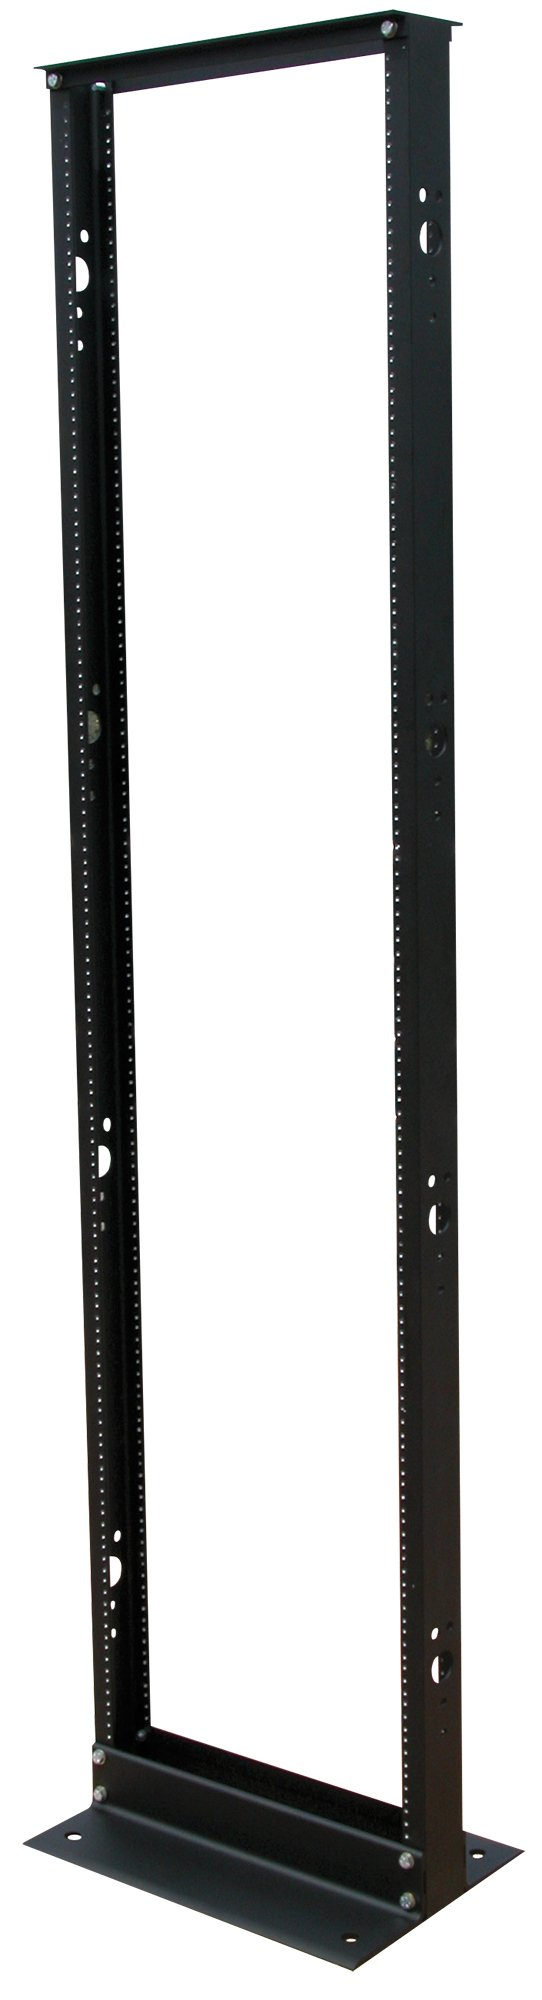 Tripp Lite 45U 2-Post Open Frame rack, Network Equipment Rack, 800 lb. Capacity (SR2POST) by Tripp Lite